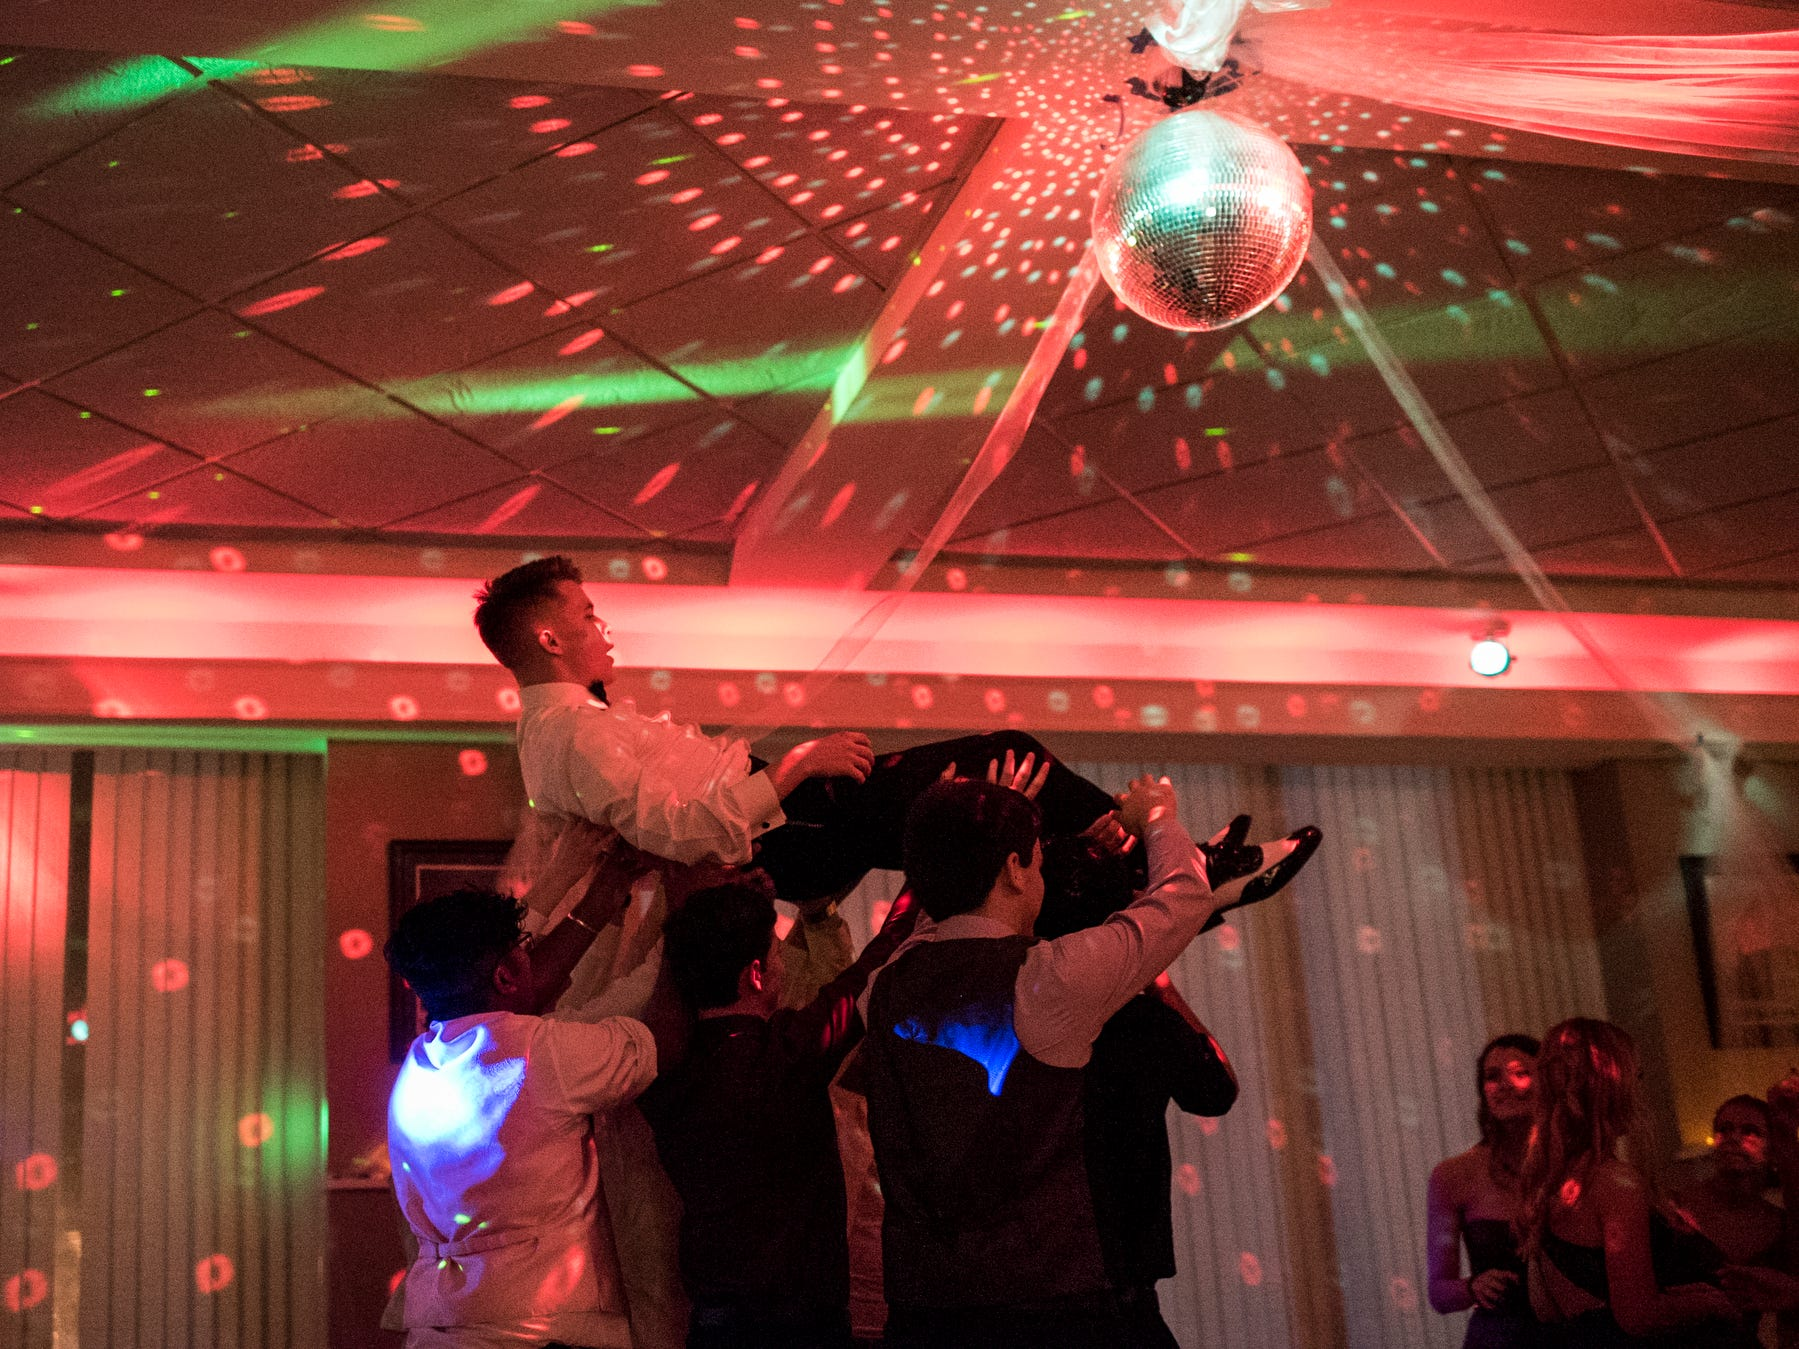 Duke Moosbrugger steadies himself as a group of friends carry him across the dance floor during Evansville Day School's prom held at the Hadi Shrine Banquet Hall in downtown Evansville, Ind., Saturday, April 27, 2019.